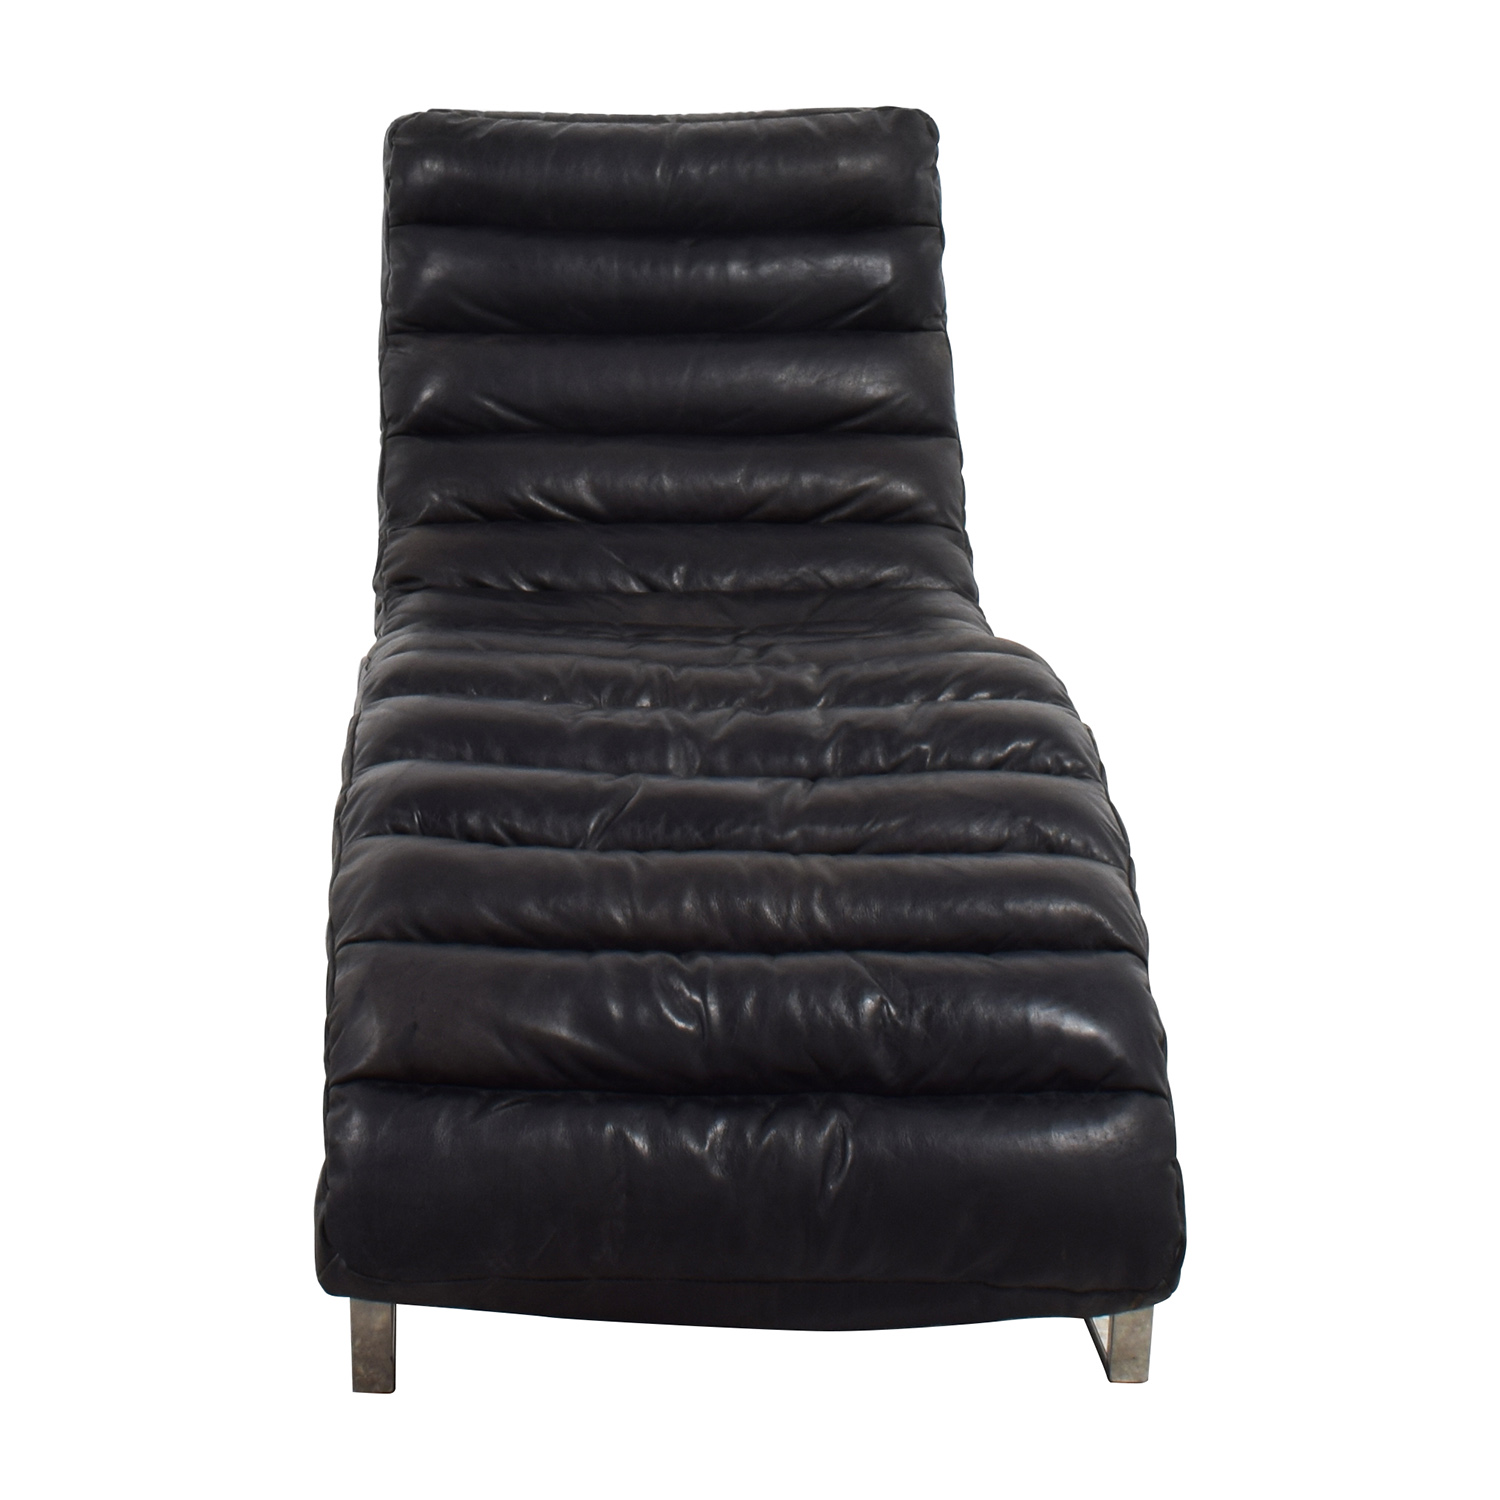 buy Restoration Hardware Oviedo Black Leather Chaise Restoration Hardware Chaises